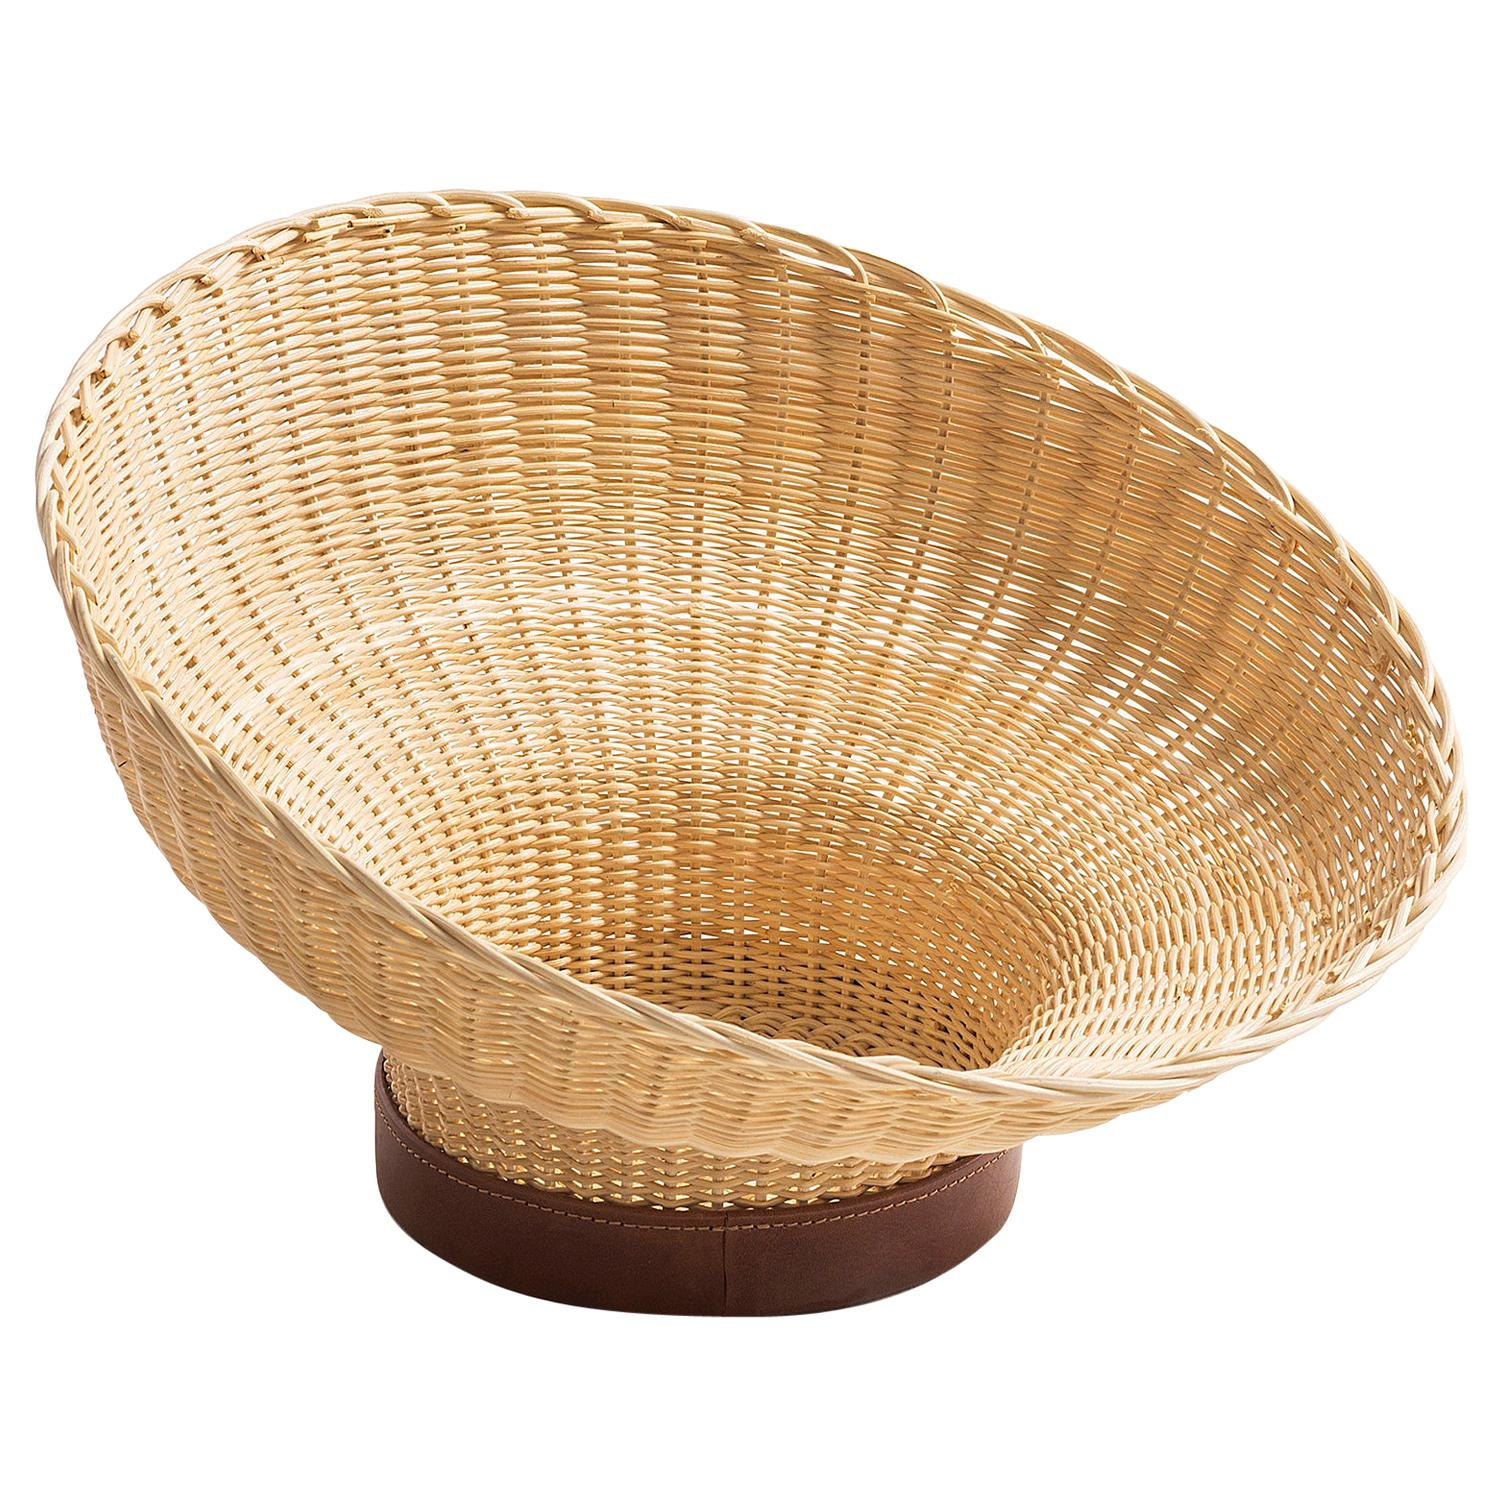 Handwoven Wicker and Leather Centerpiece 'Mawa'